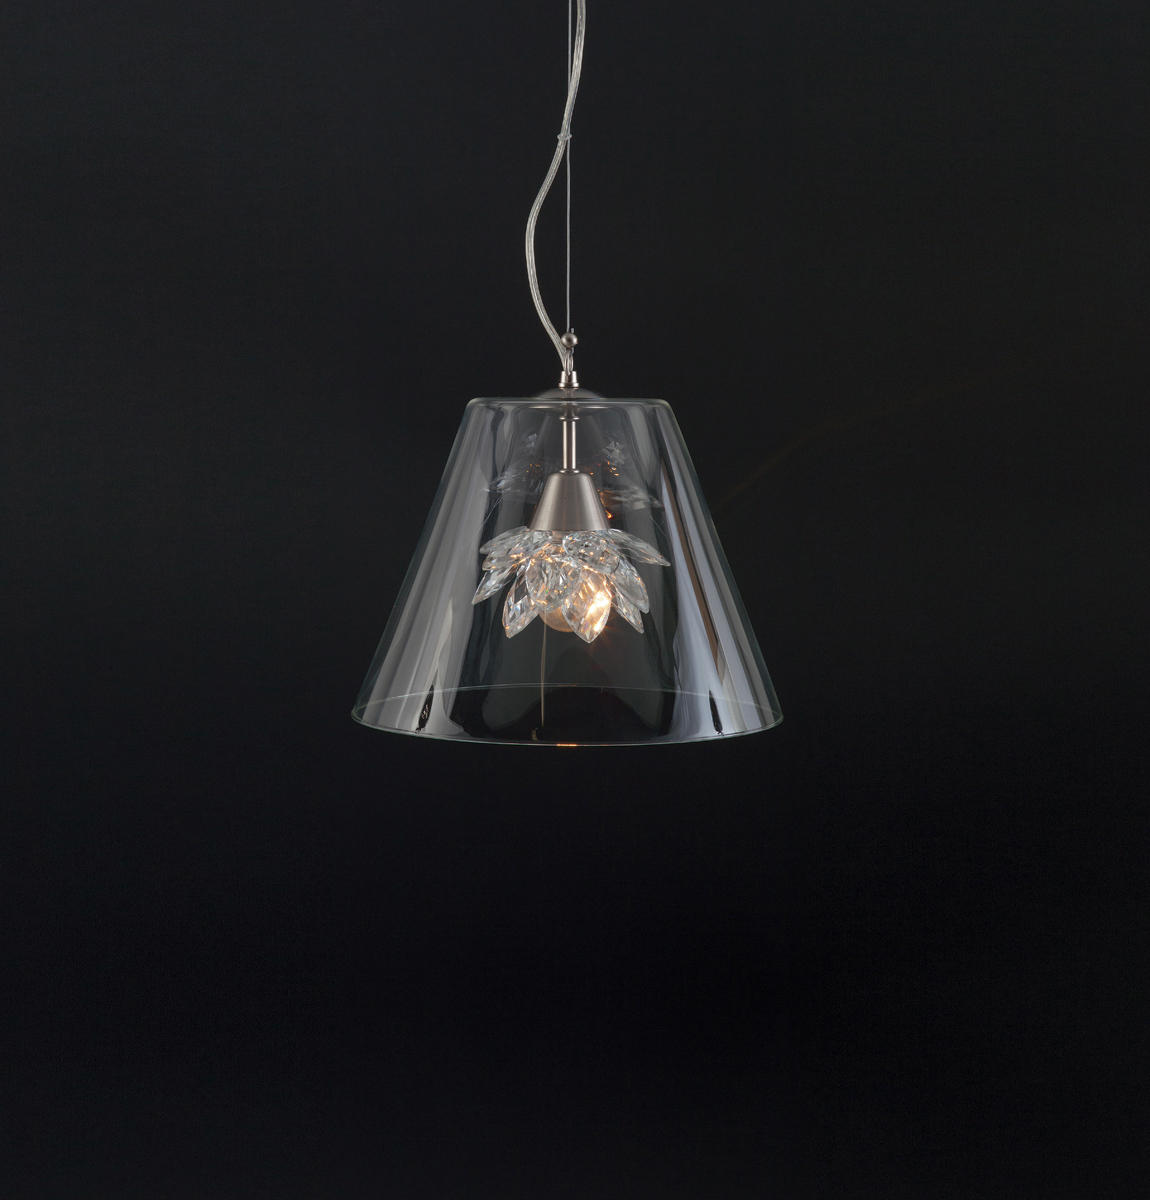 Pendant Light Research And Select Harco Loor Products Online